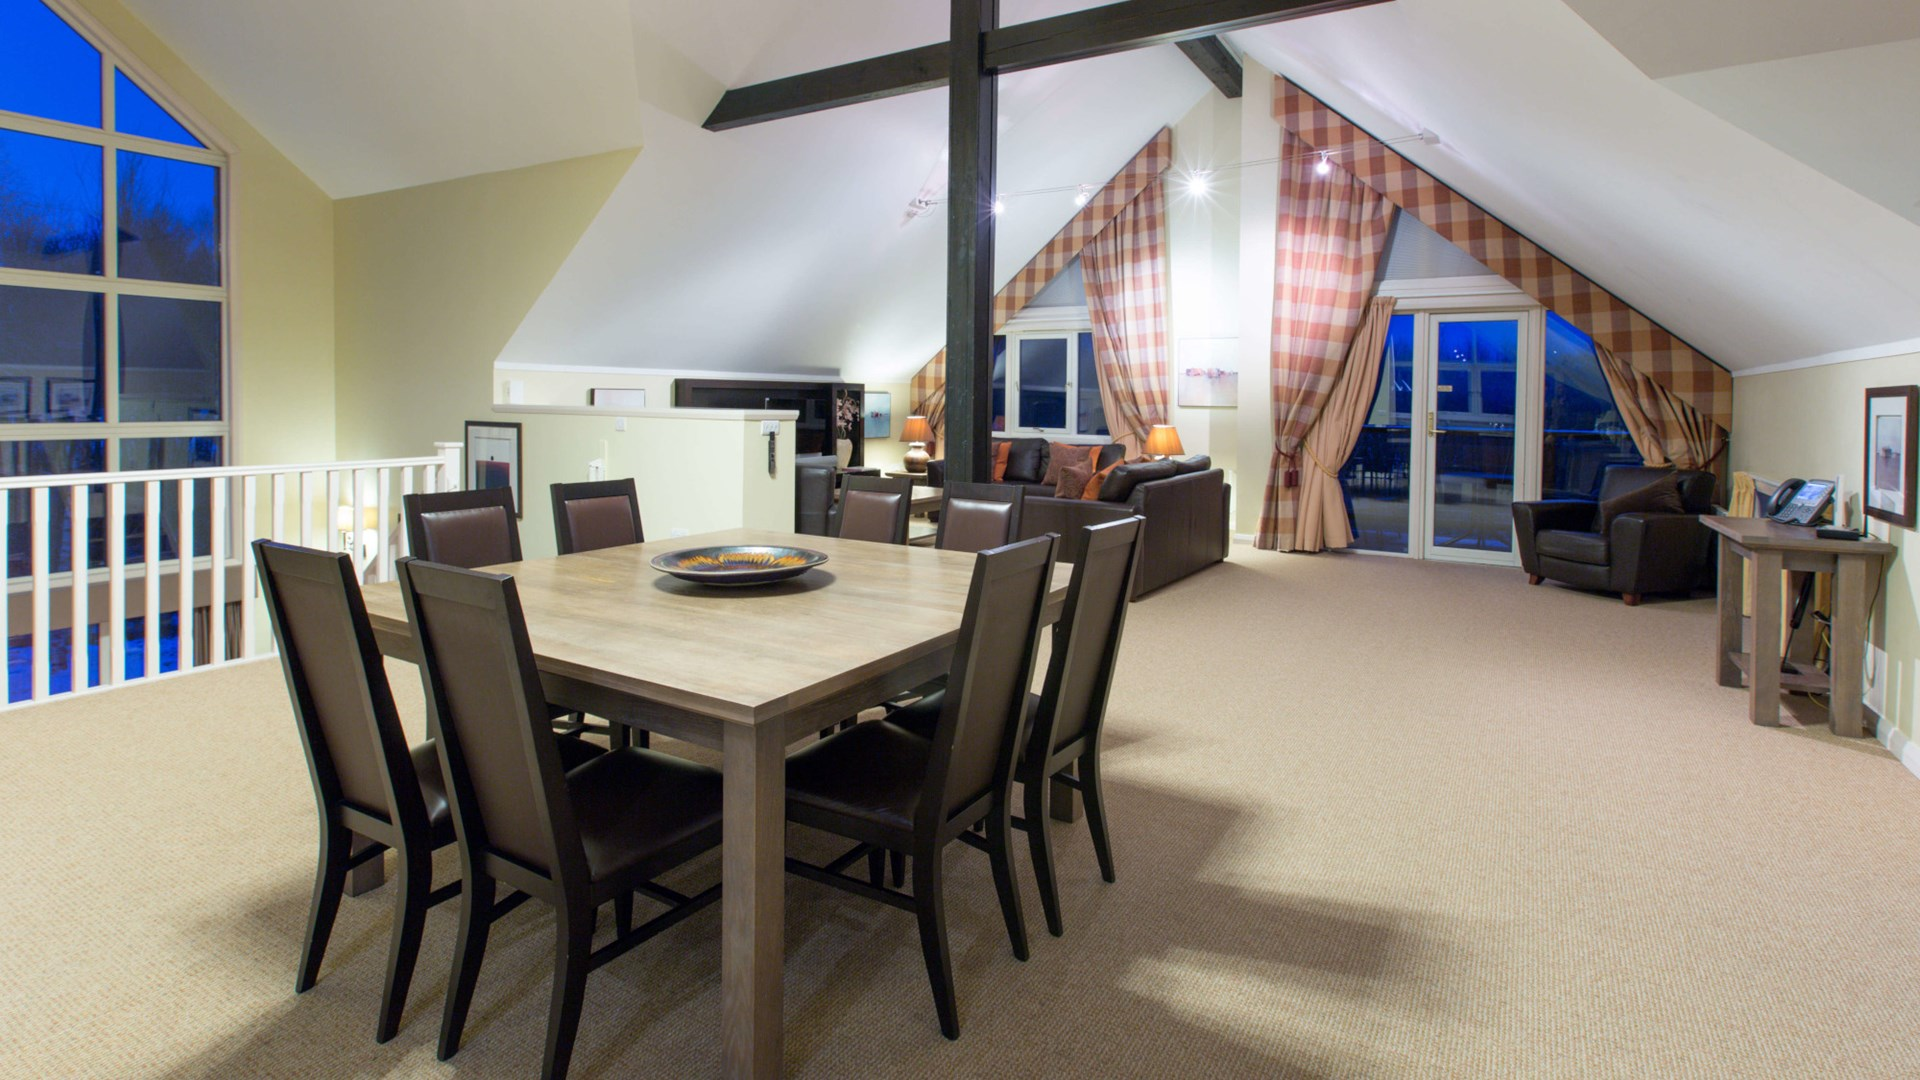 Spacious living and dining areas with exposed wood beams and floor length windows, within four bedroom detached lodge.